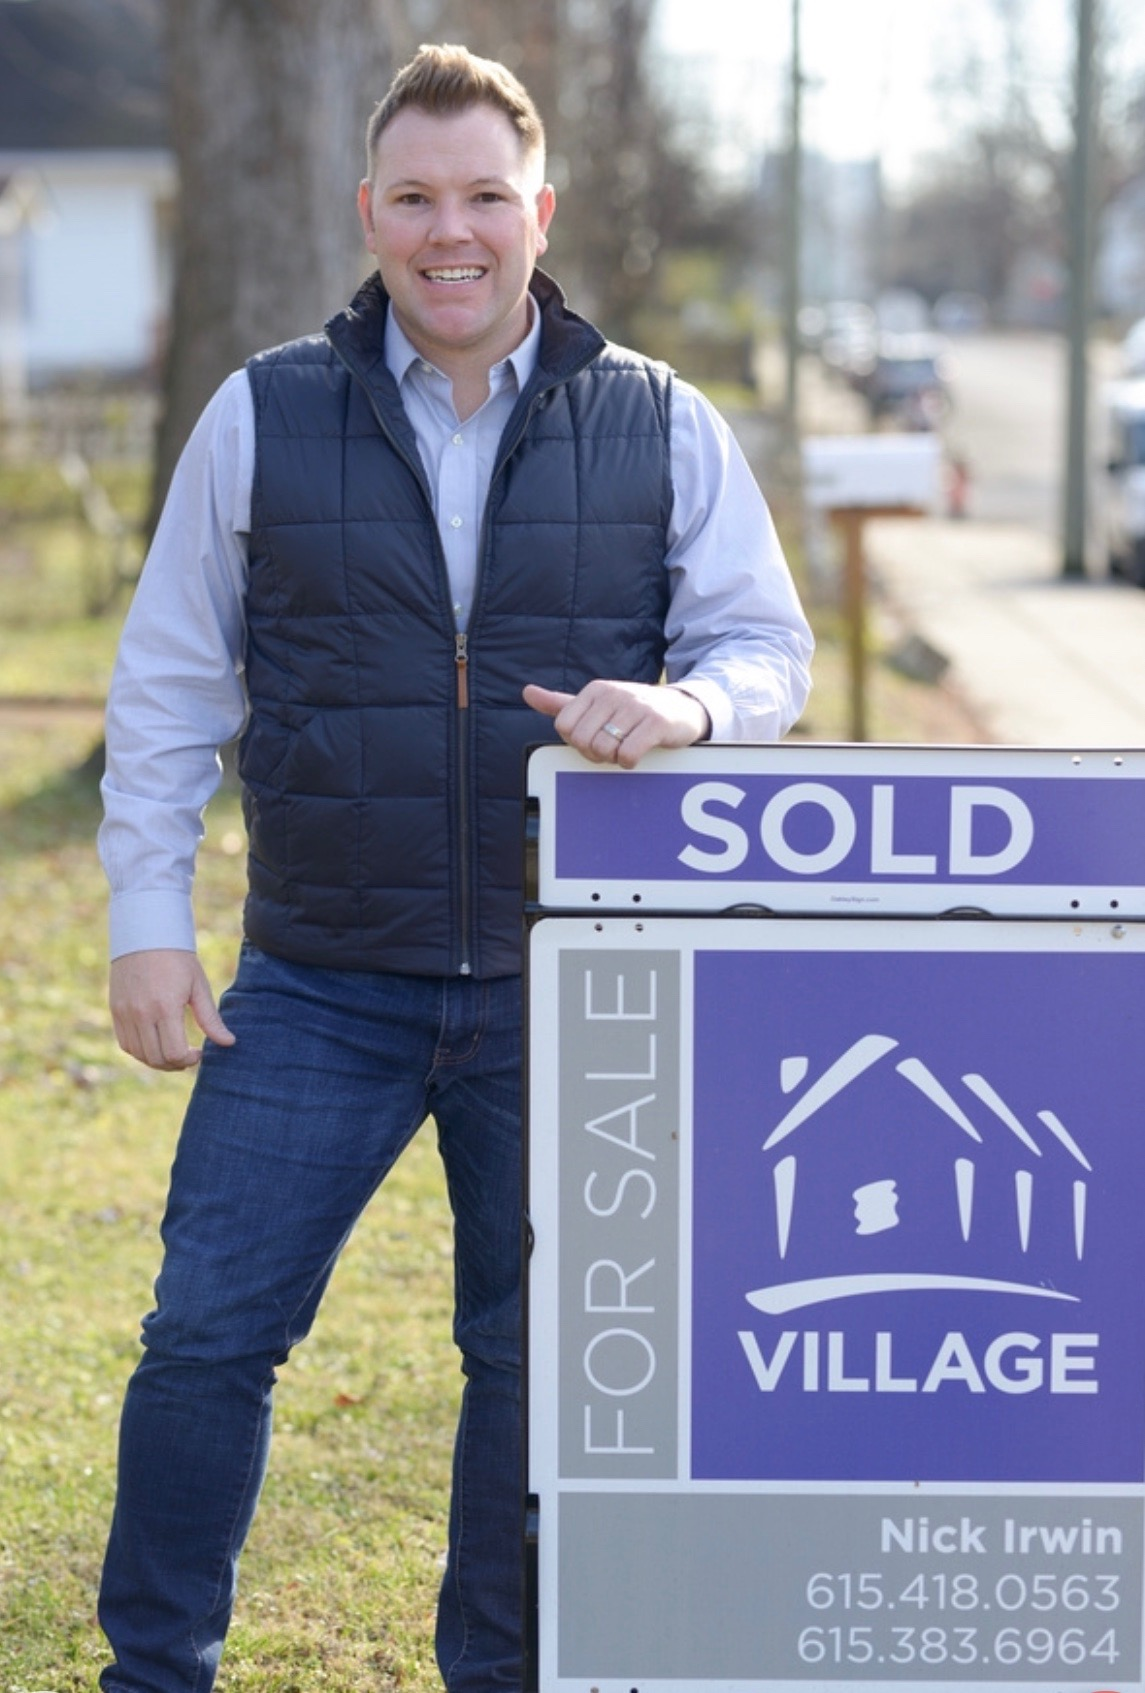 Nick Irwin - Real Estate Broker in Nashville